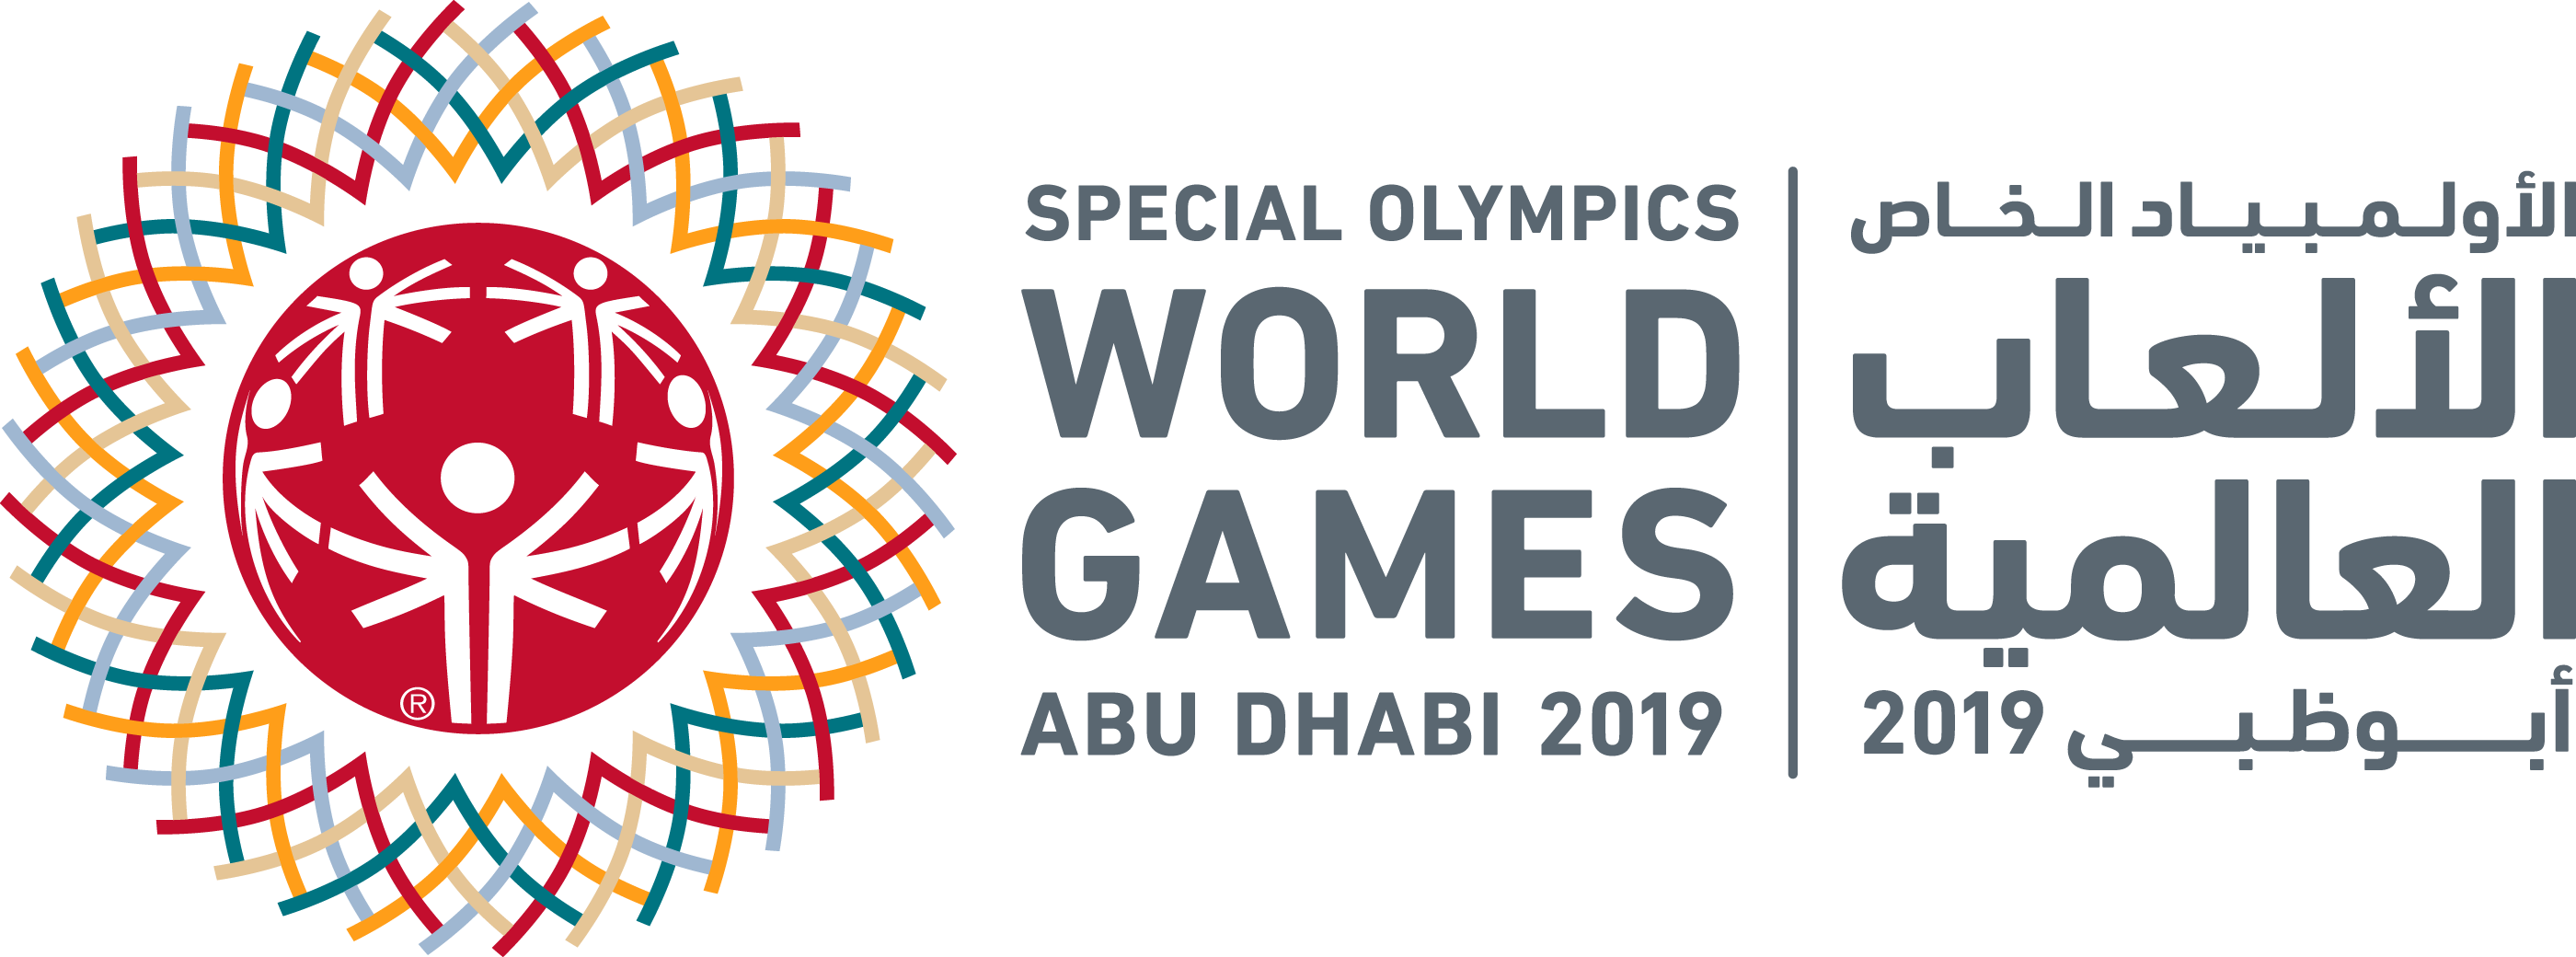 Special Olympics 2019 Calendar World Games Athletes   Special Olympics Maryland